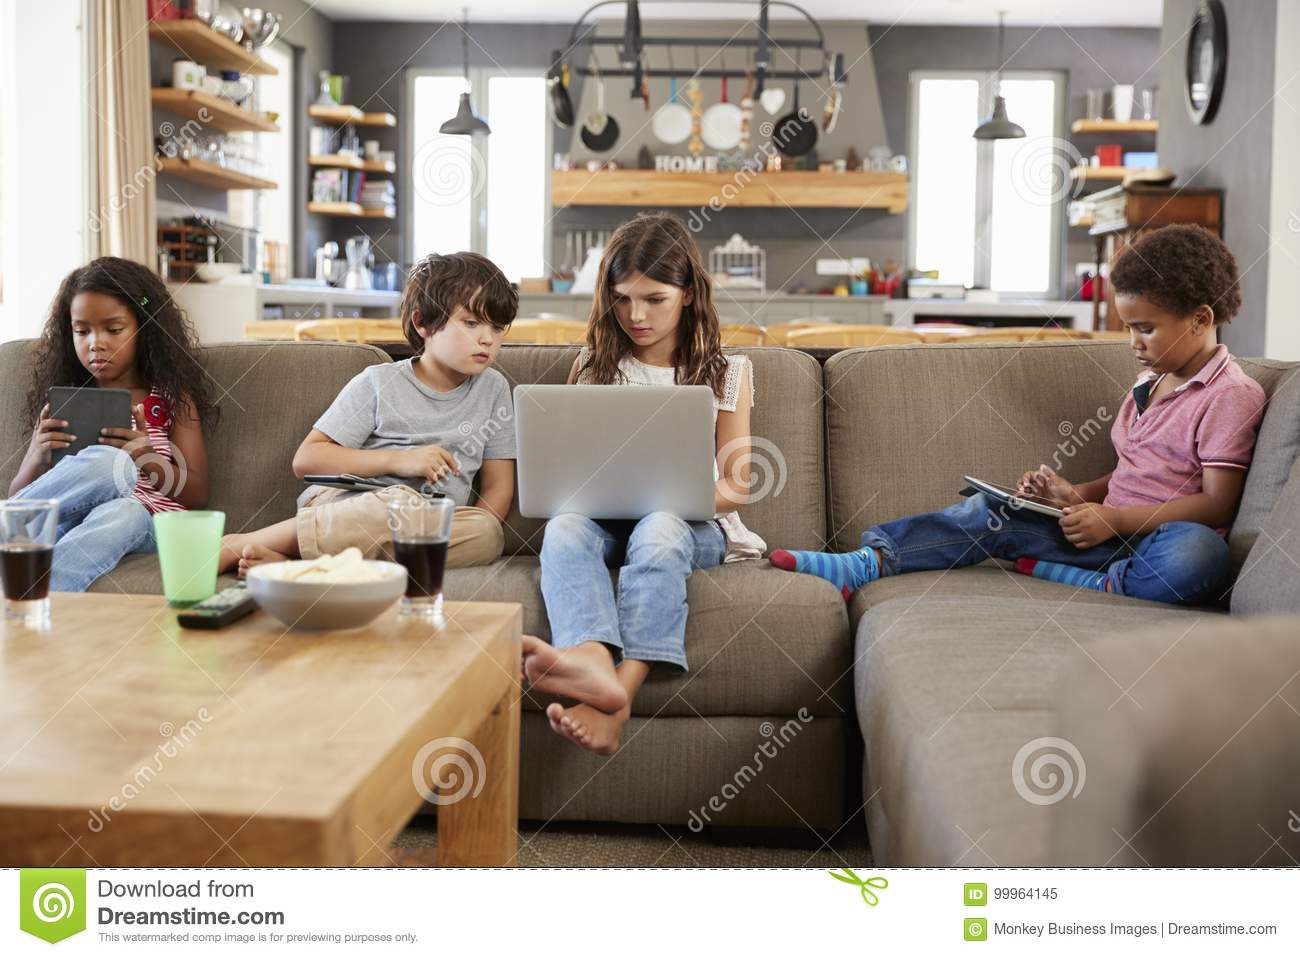 Groupe d enfants s asseyant sur Sofa Using Digital Devices